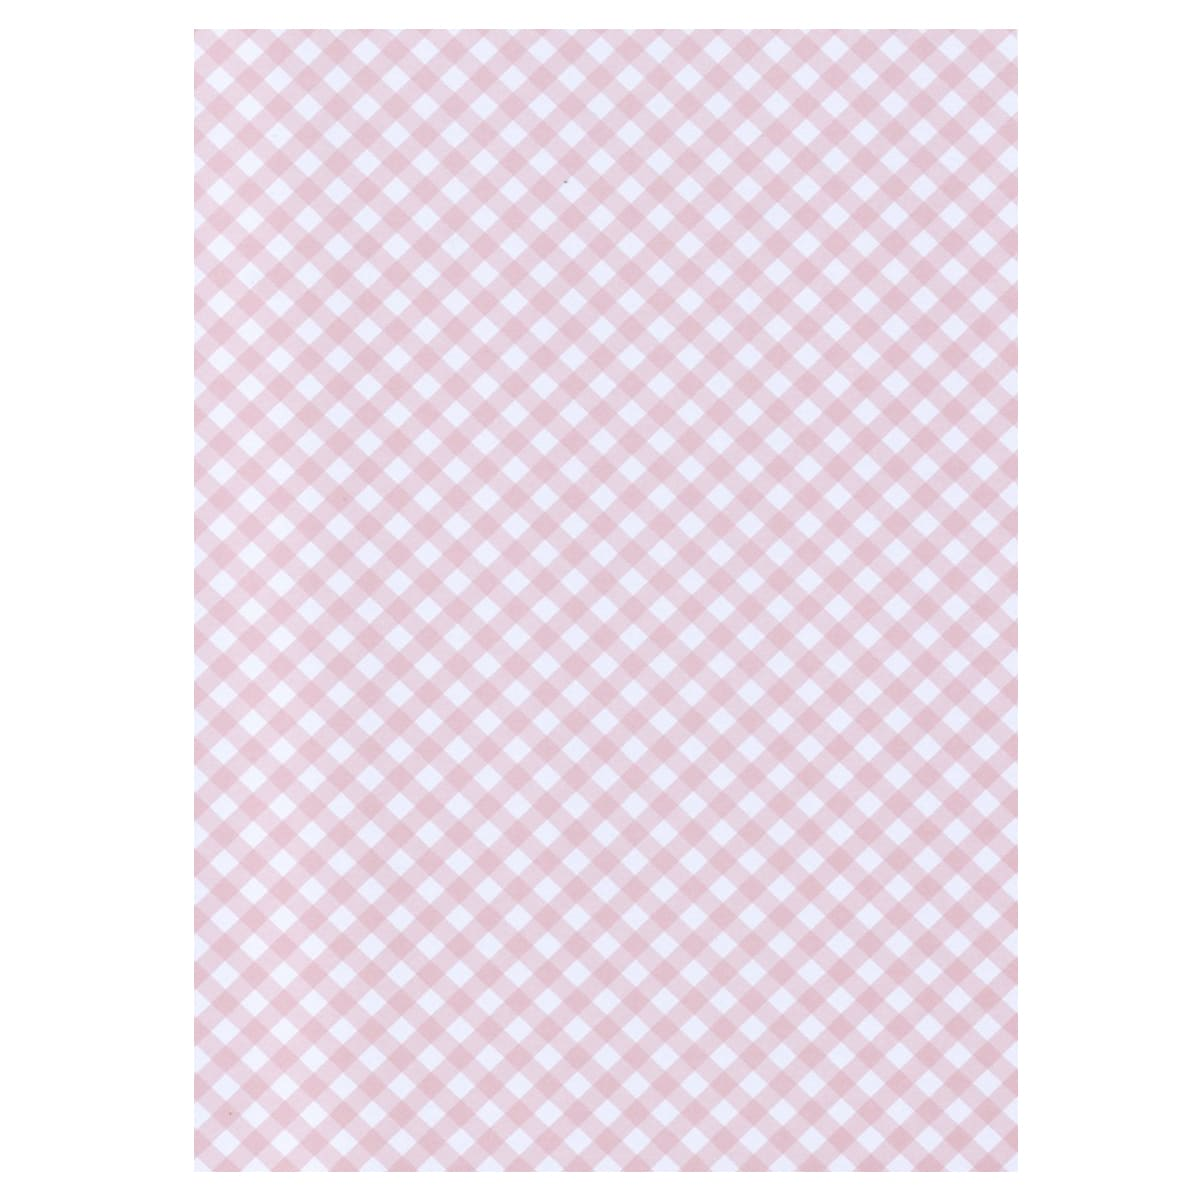 A4 BABY PINK BRILLIANCY CHECK GINGHAM CARD 300 GSM